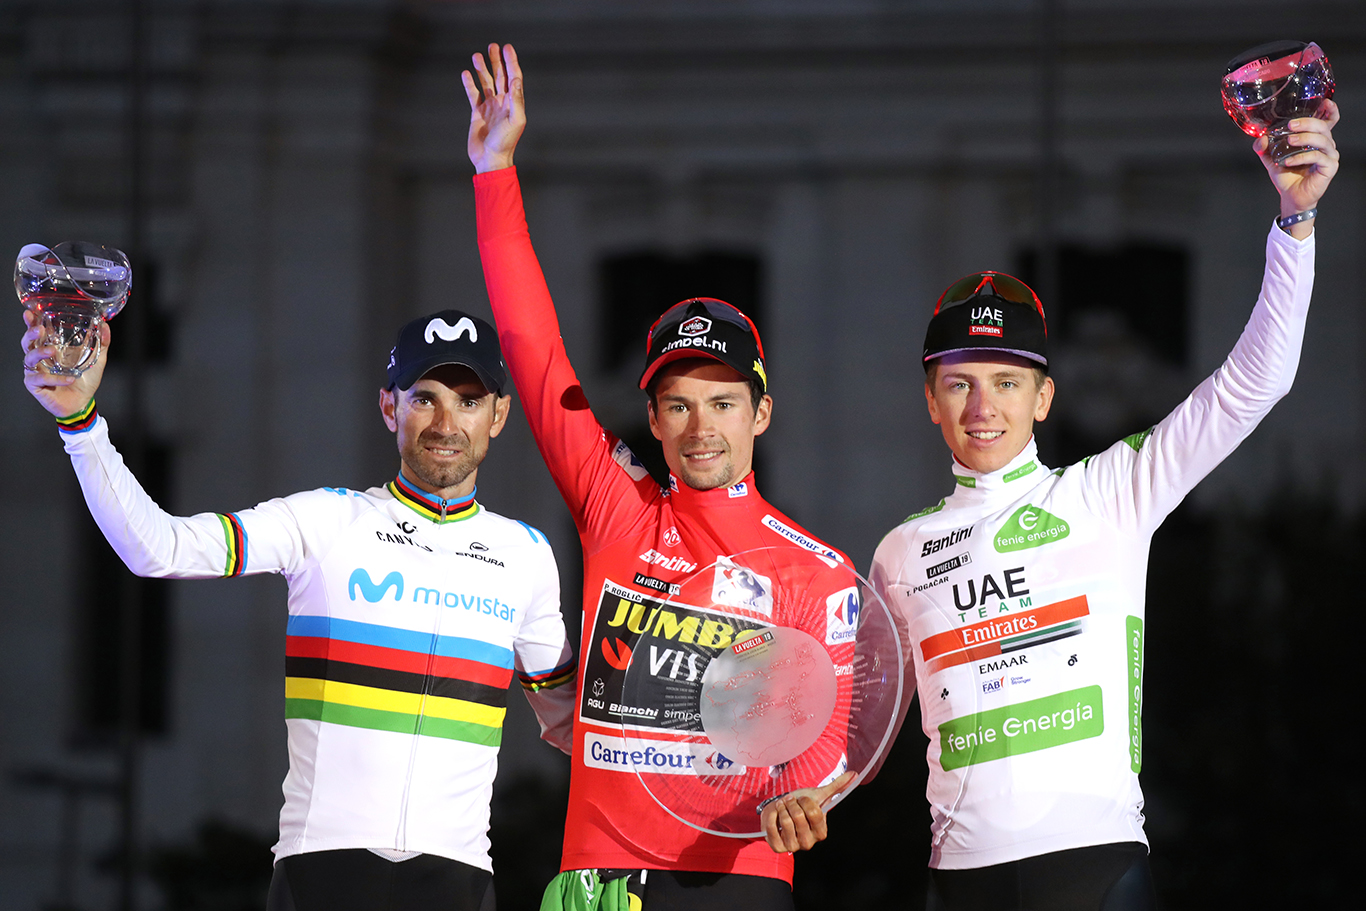 Cycling: Vuelta Espana 2019 / Tour of Spain 2019/ La Vuelta/ Etapa 21/ Stage 21/ .PODIUM/ CELEBRACION CELEBRATION/ MAILLOT ROJO LIDER/ RED LEADER JERSEY/ ROGLIC Primoz (SLO)/ VALVERDE Alejandro (ESP)/ MAILLOT BLANCO MEJOR CORREDOR JOVEN/ WHITE BEST YOUNG RIDER JERSEY/ POGACAR Tadej (SLO).Fuenlabrada - Madrid (106,6 km) 15-09-2019/.Vuelta Espana 2019 / La Vuelta/ Tour of Spain 2019/.Luis Angel Gomez .©PHOTOGOMEZSPORT2019